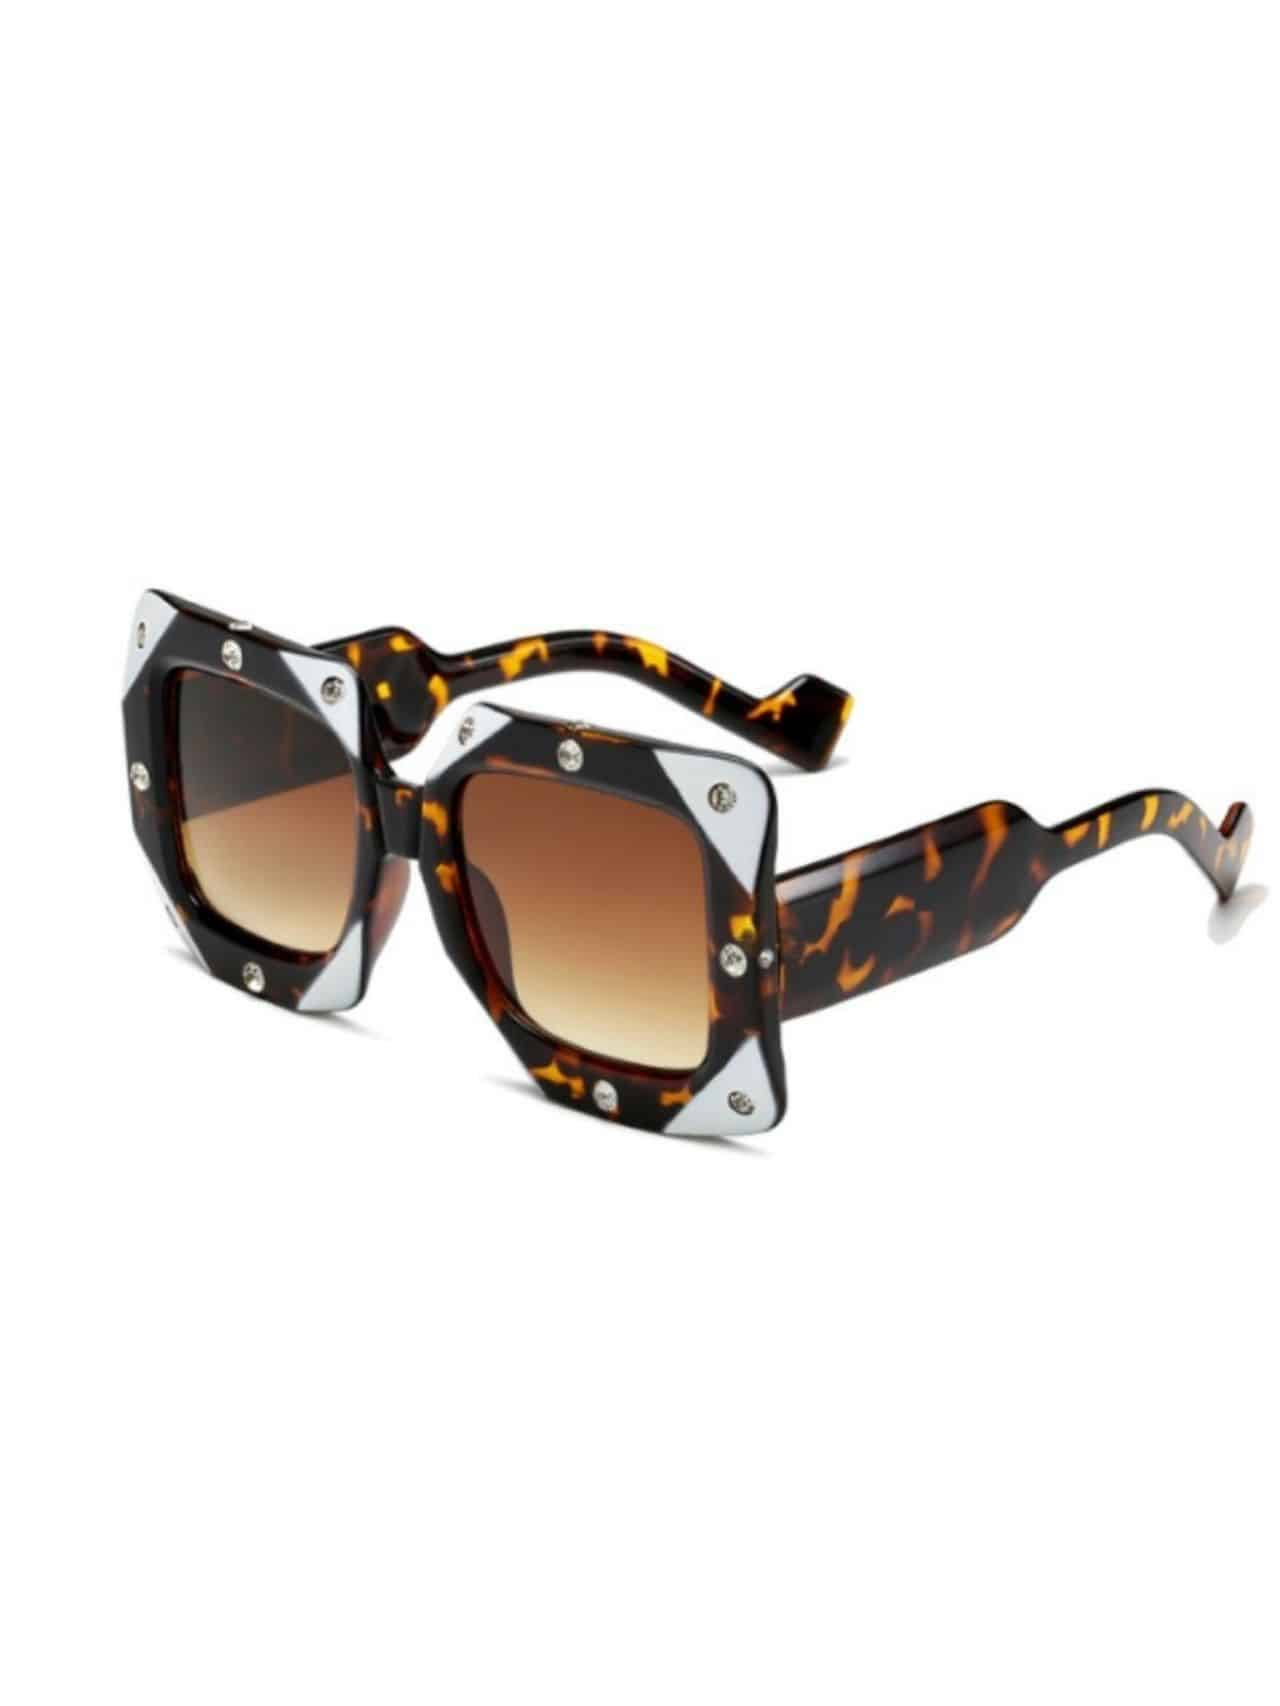 Italian Big Frame Square Diamond Sunglasses